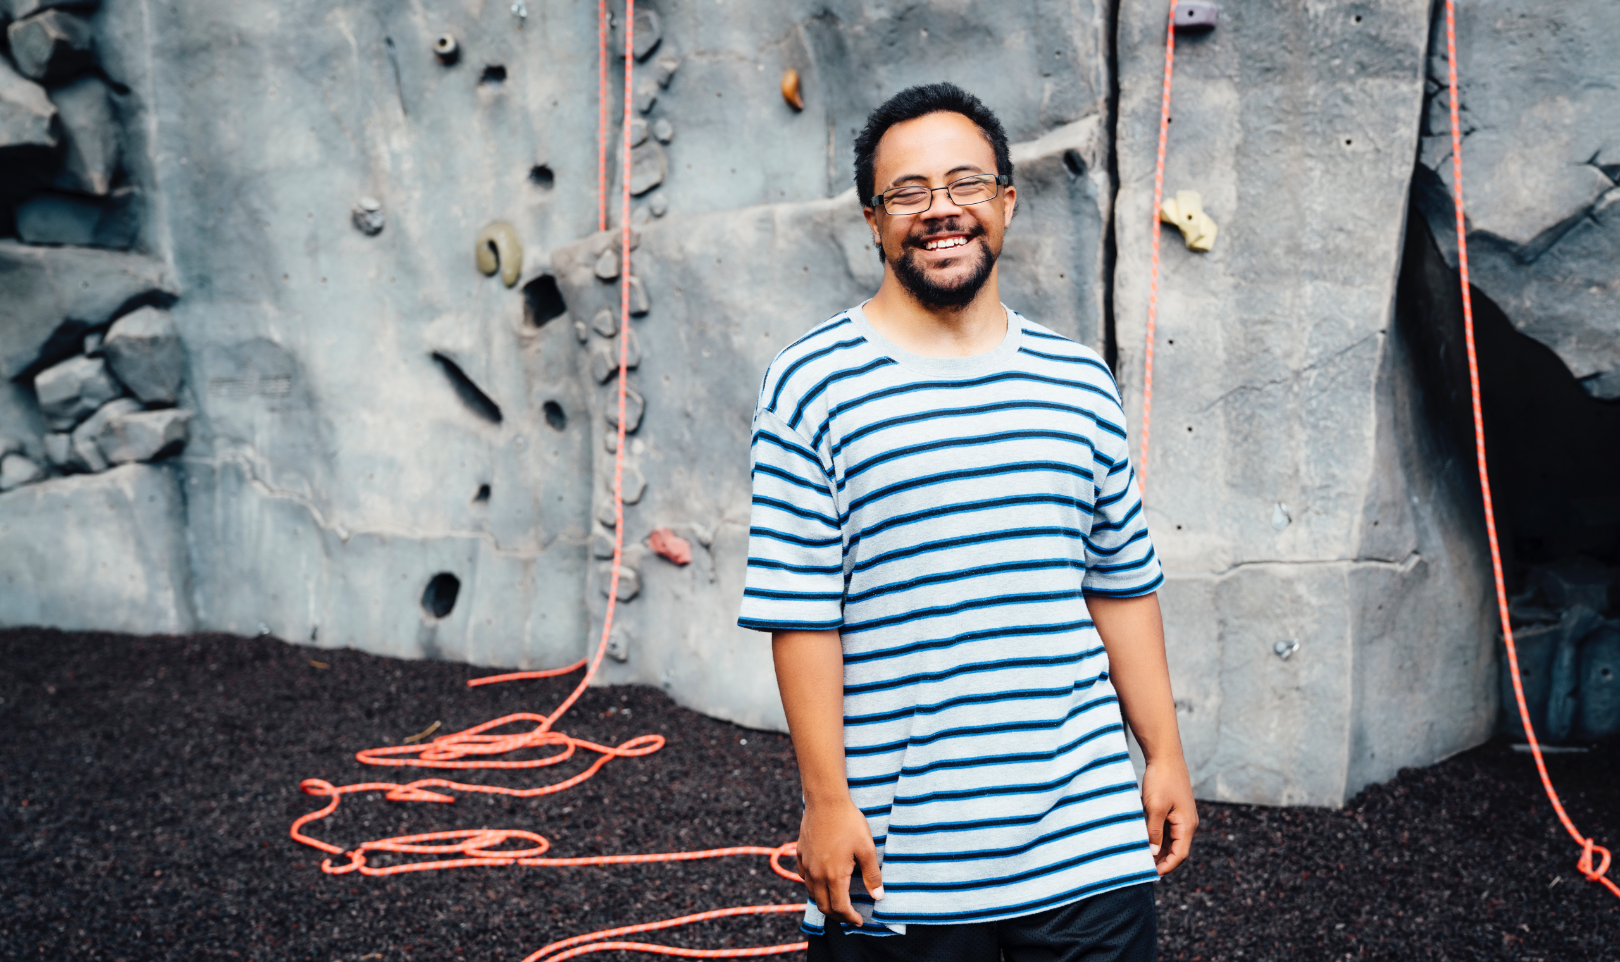 Man standing infront of rock climbing wall smiling